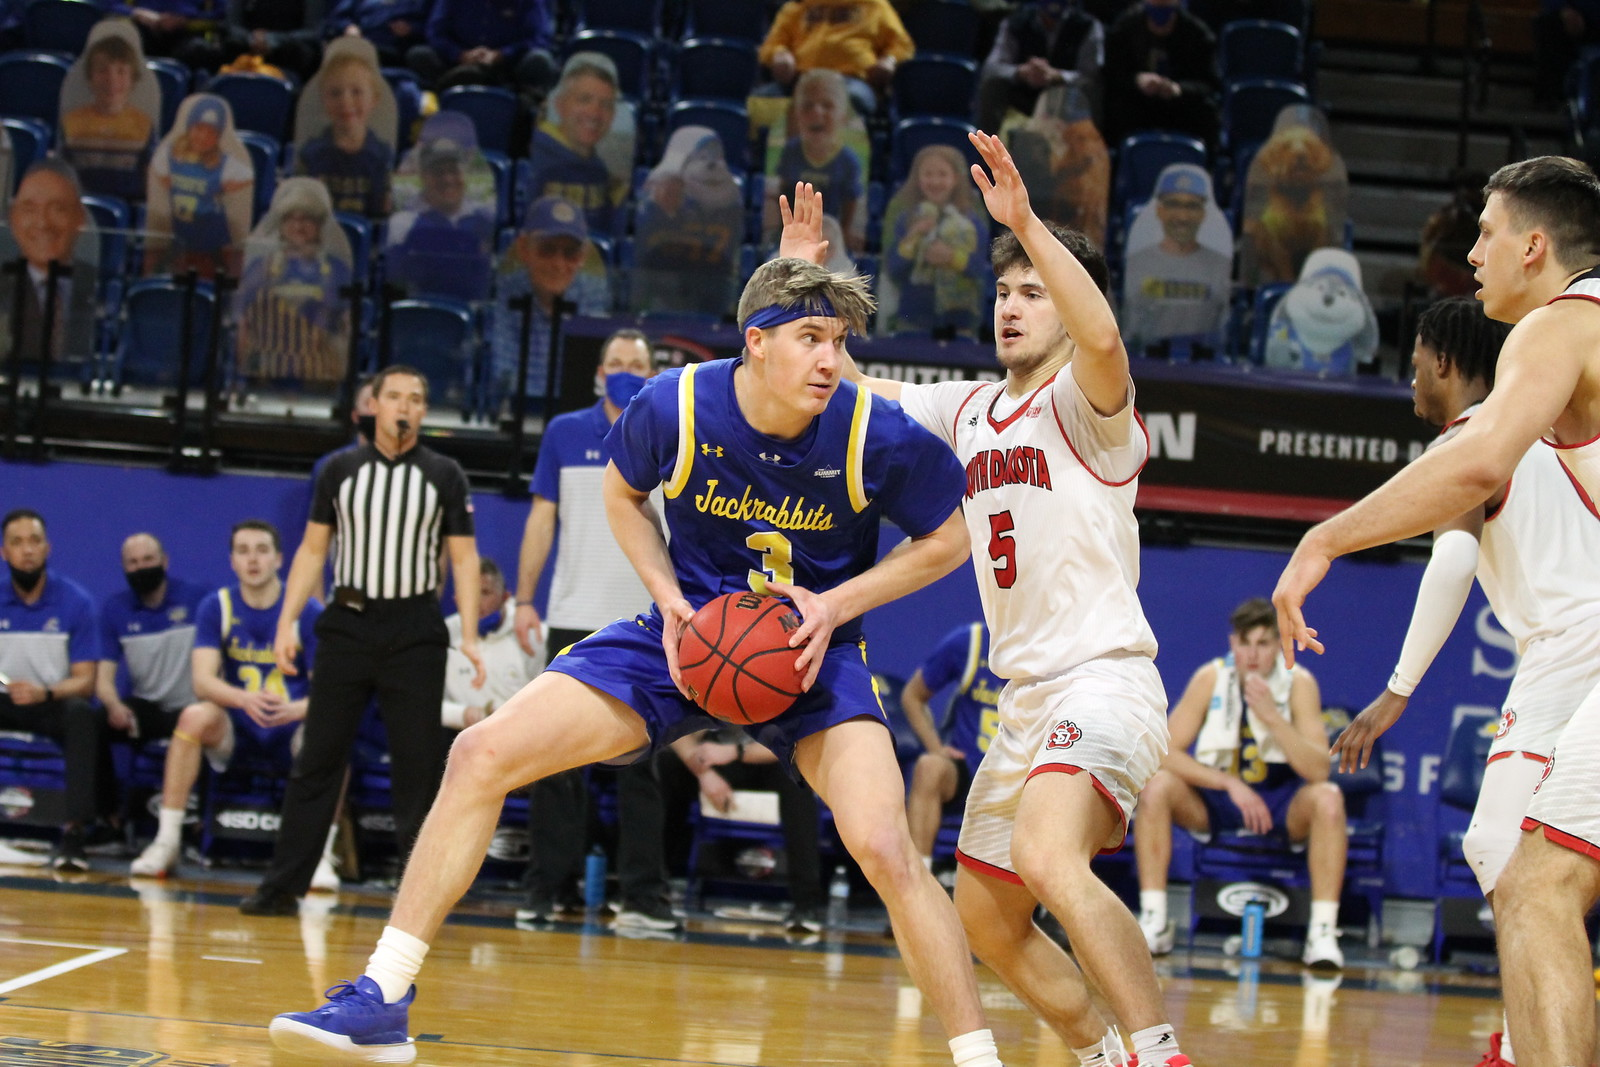 Baylor Scheierman is the anchor of a well-rounded South Dakota State basketball team.